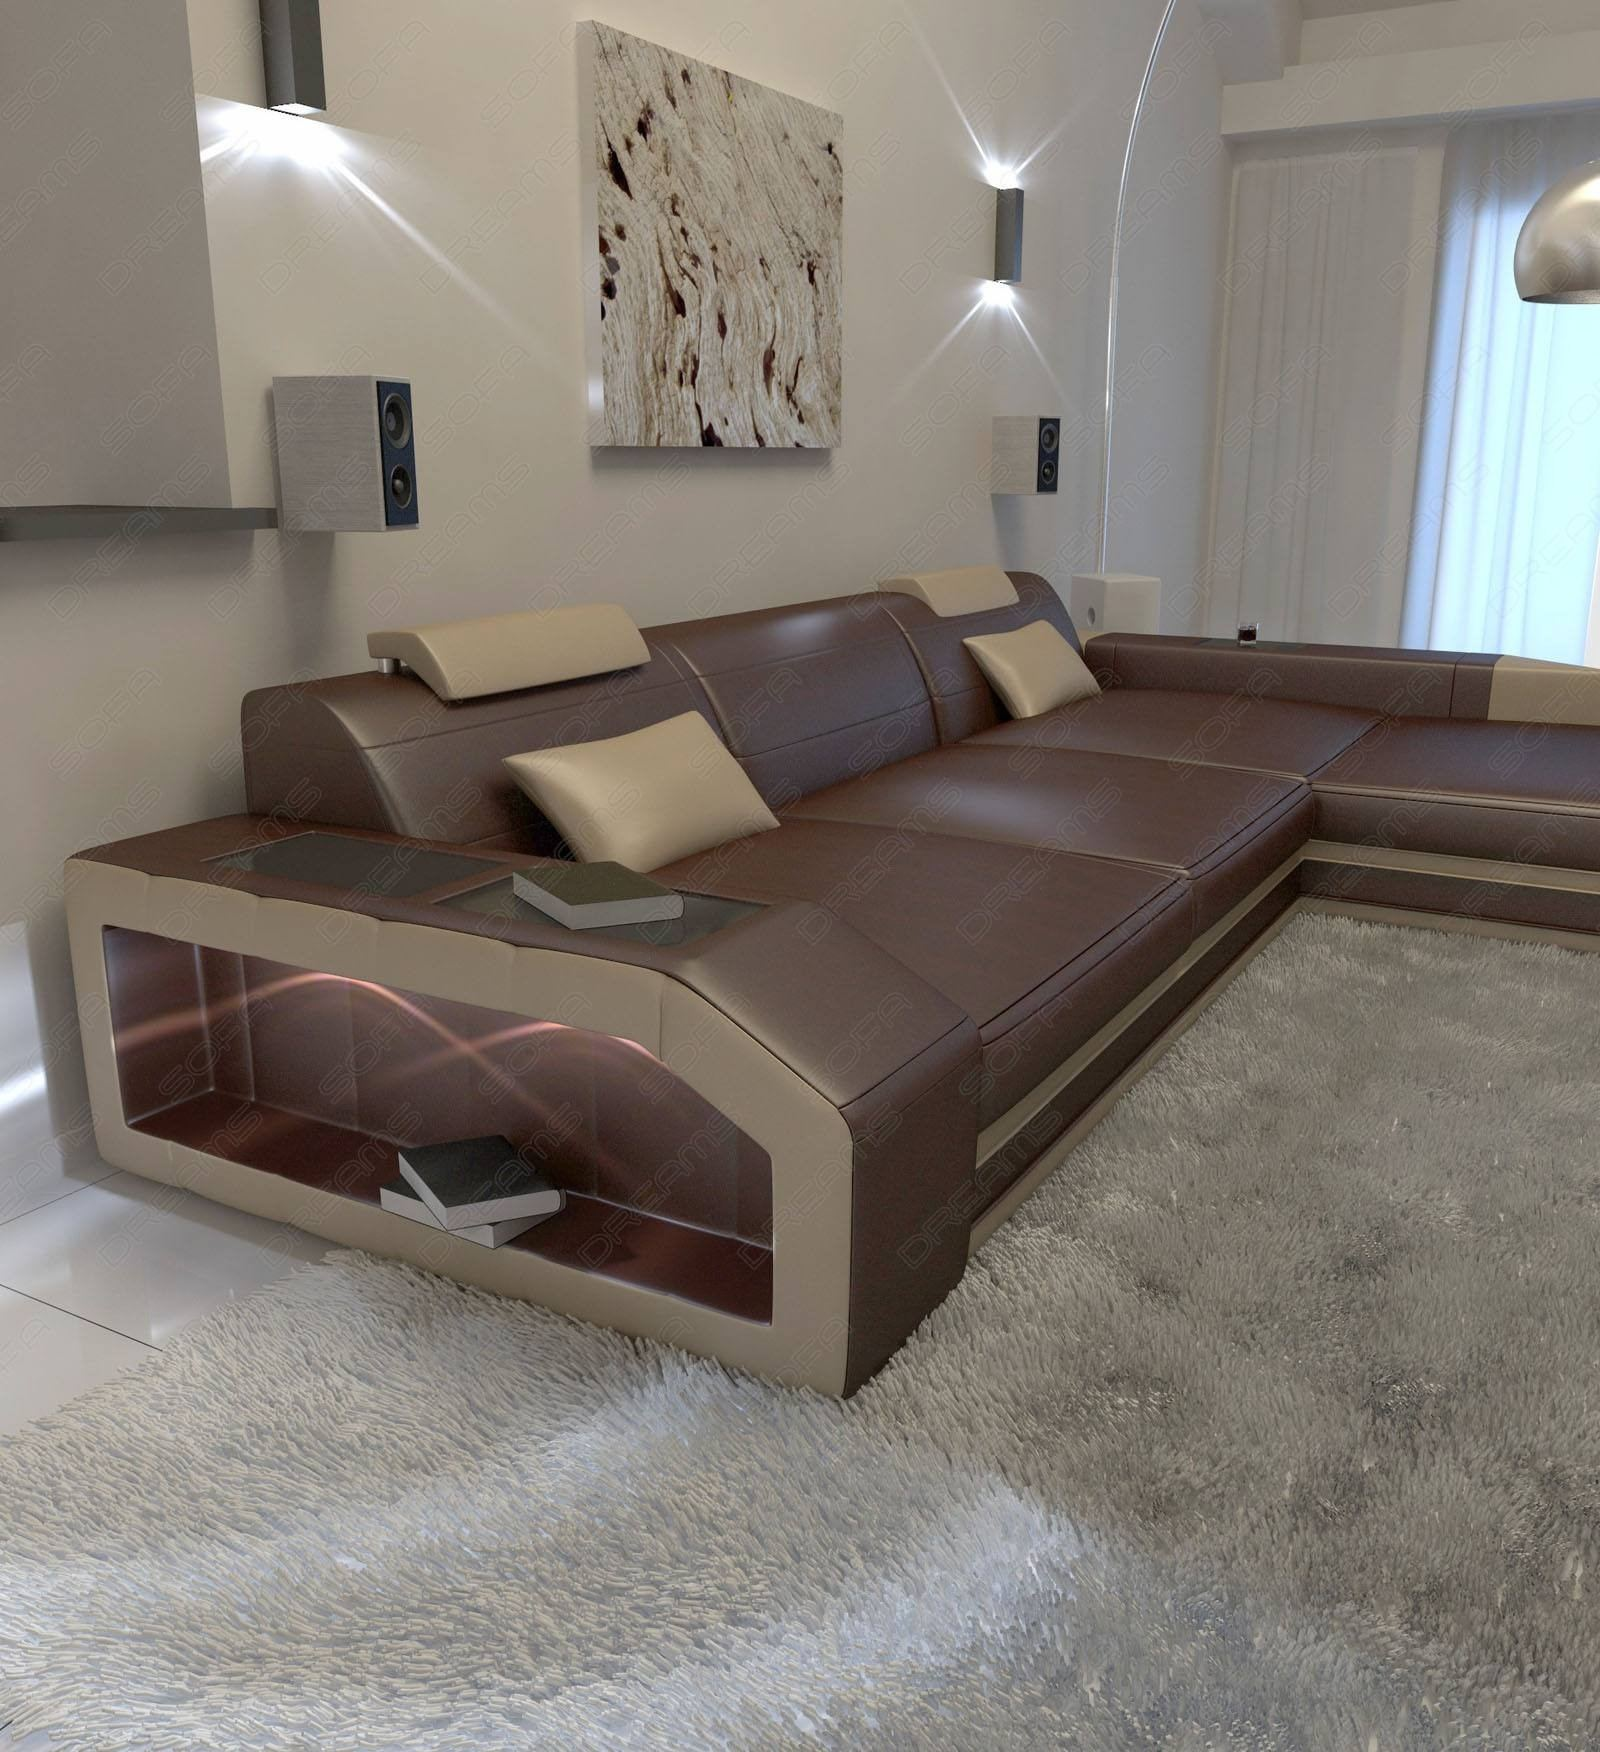 Leather Sectional Darkbrown And Sandbeige